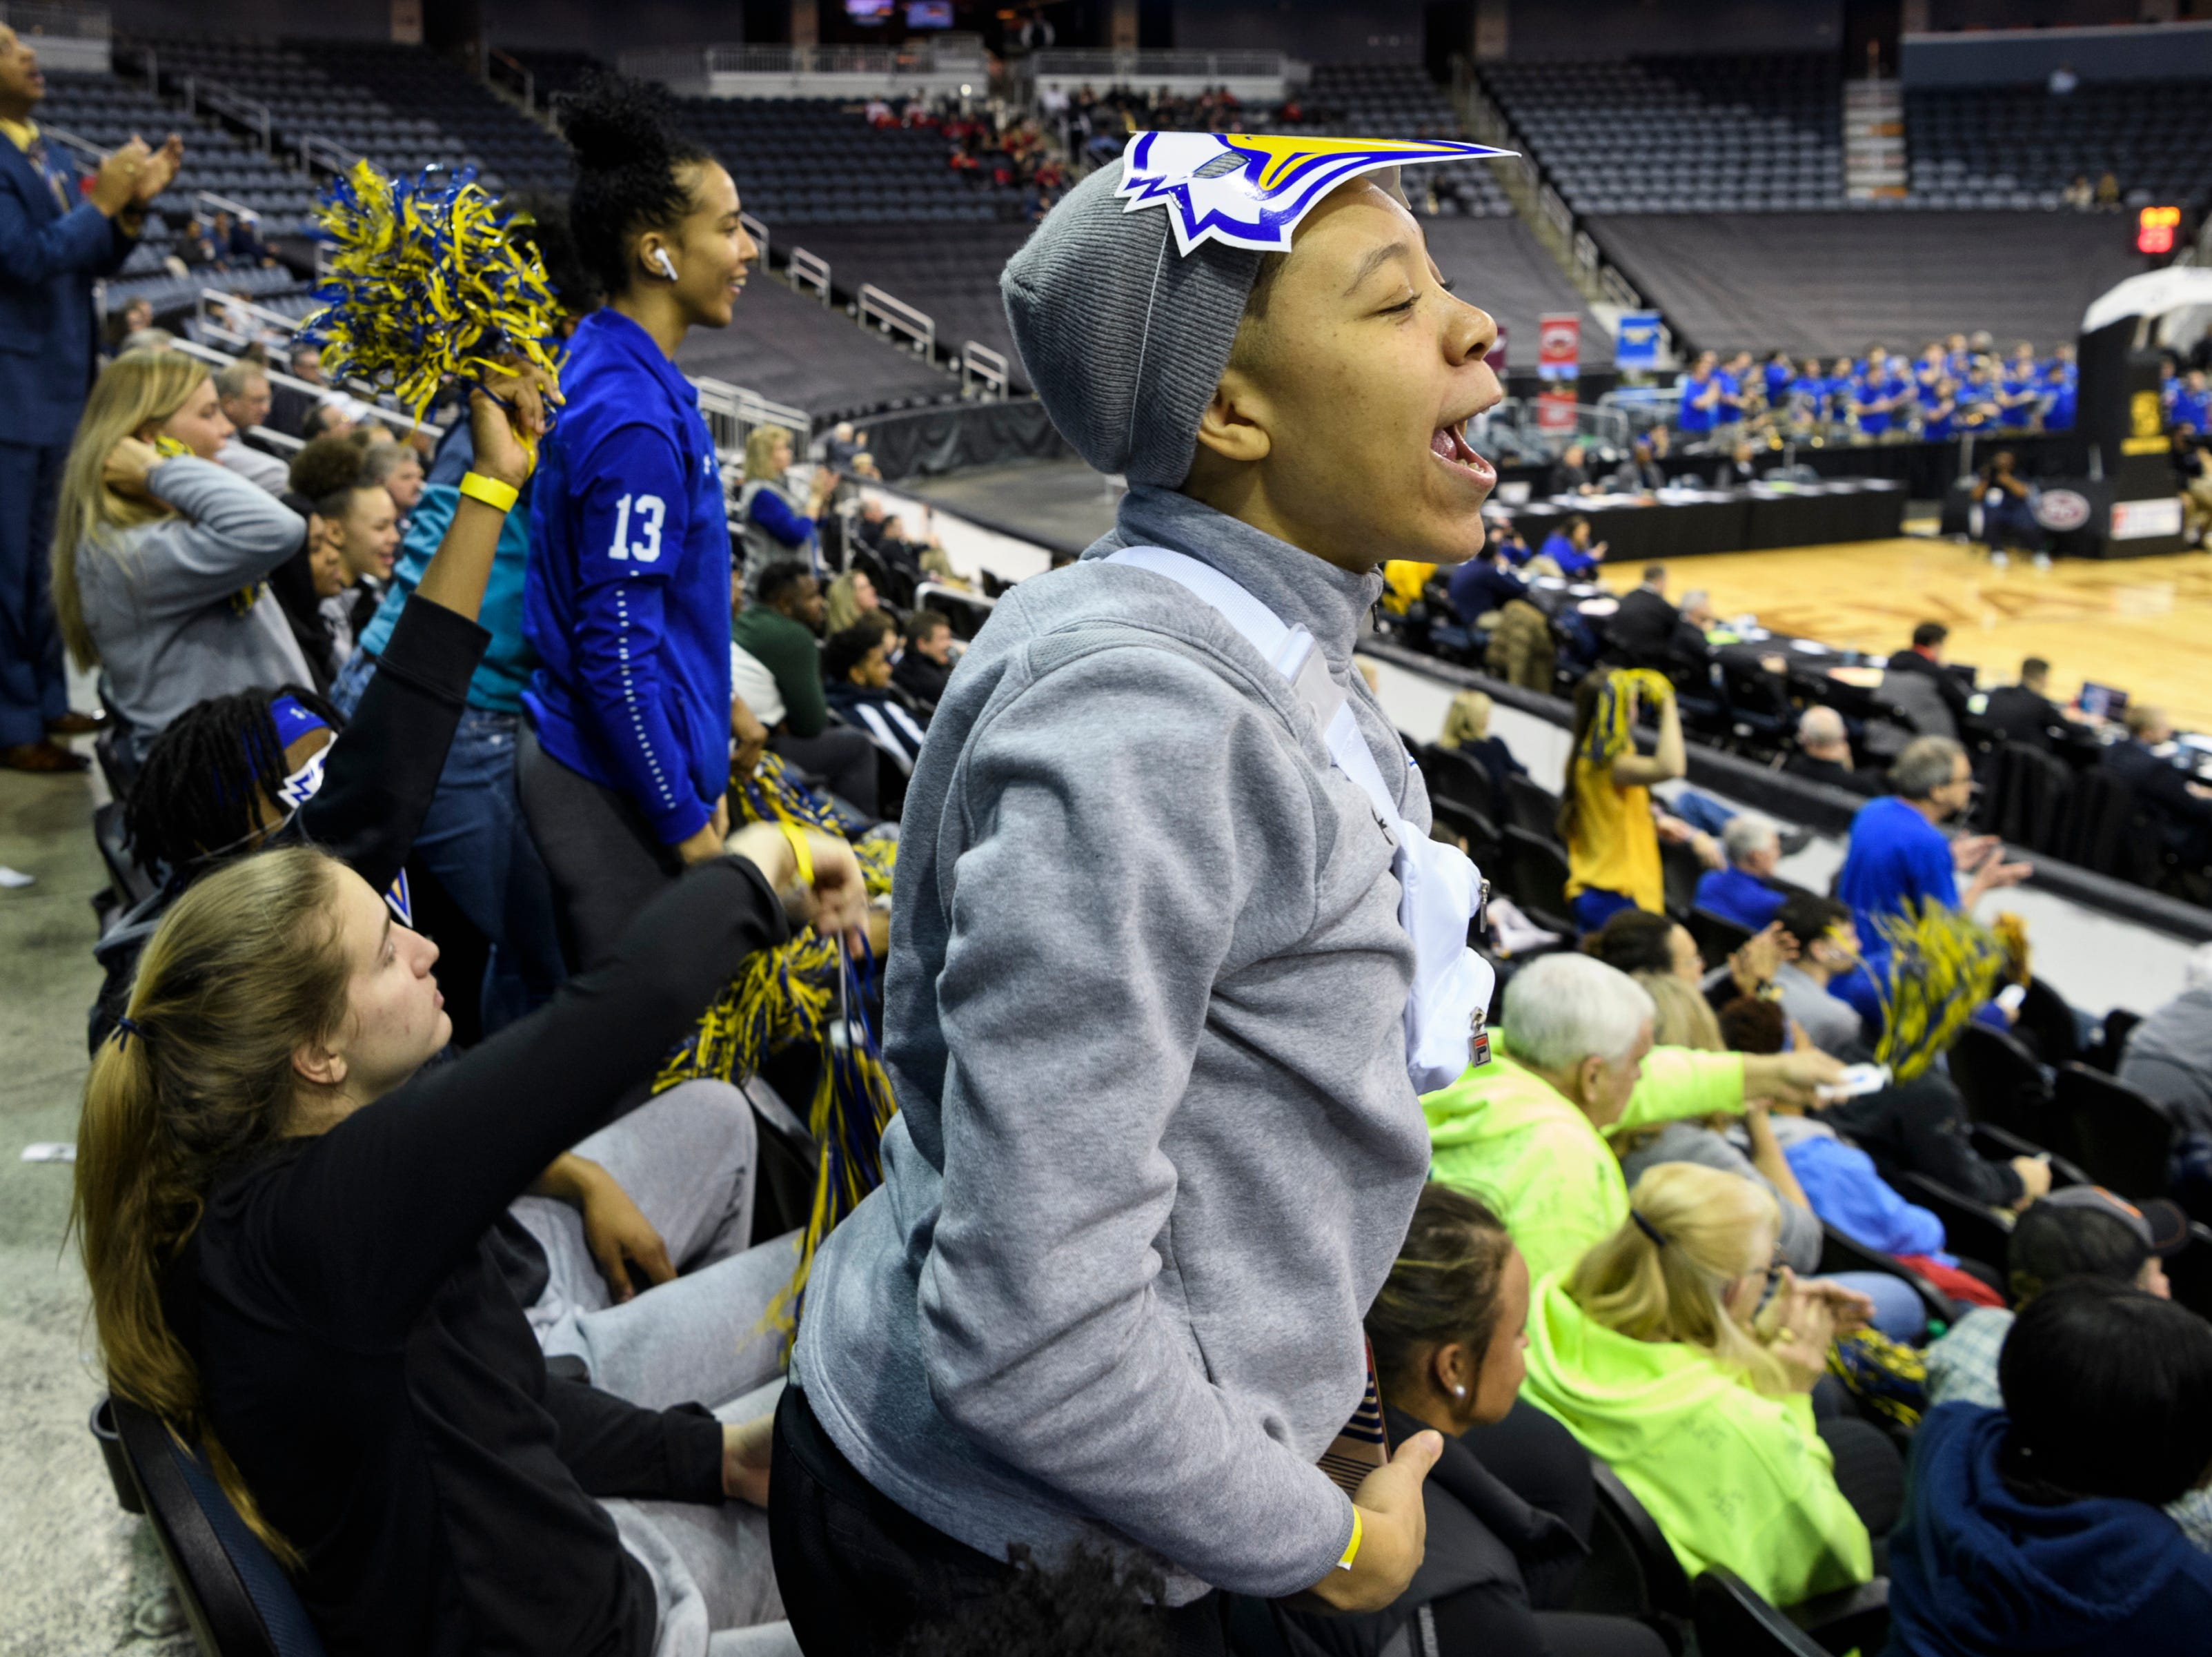 Miranda Crockett, a Morehead State University women's basketball player, cheers for the men's team as they take on the Austin Peay State University Governors during the Ohio Valley Conference tournament quarterfinals at Ford Center in Evansville, Ind., Thursday, March 7, 2019. The men's team was knocked out of the tournament on Thursday evening and the women's team was knocked out in the semifinals Friday.